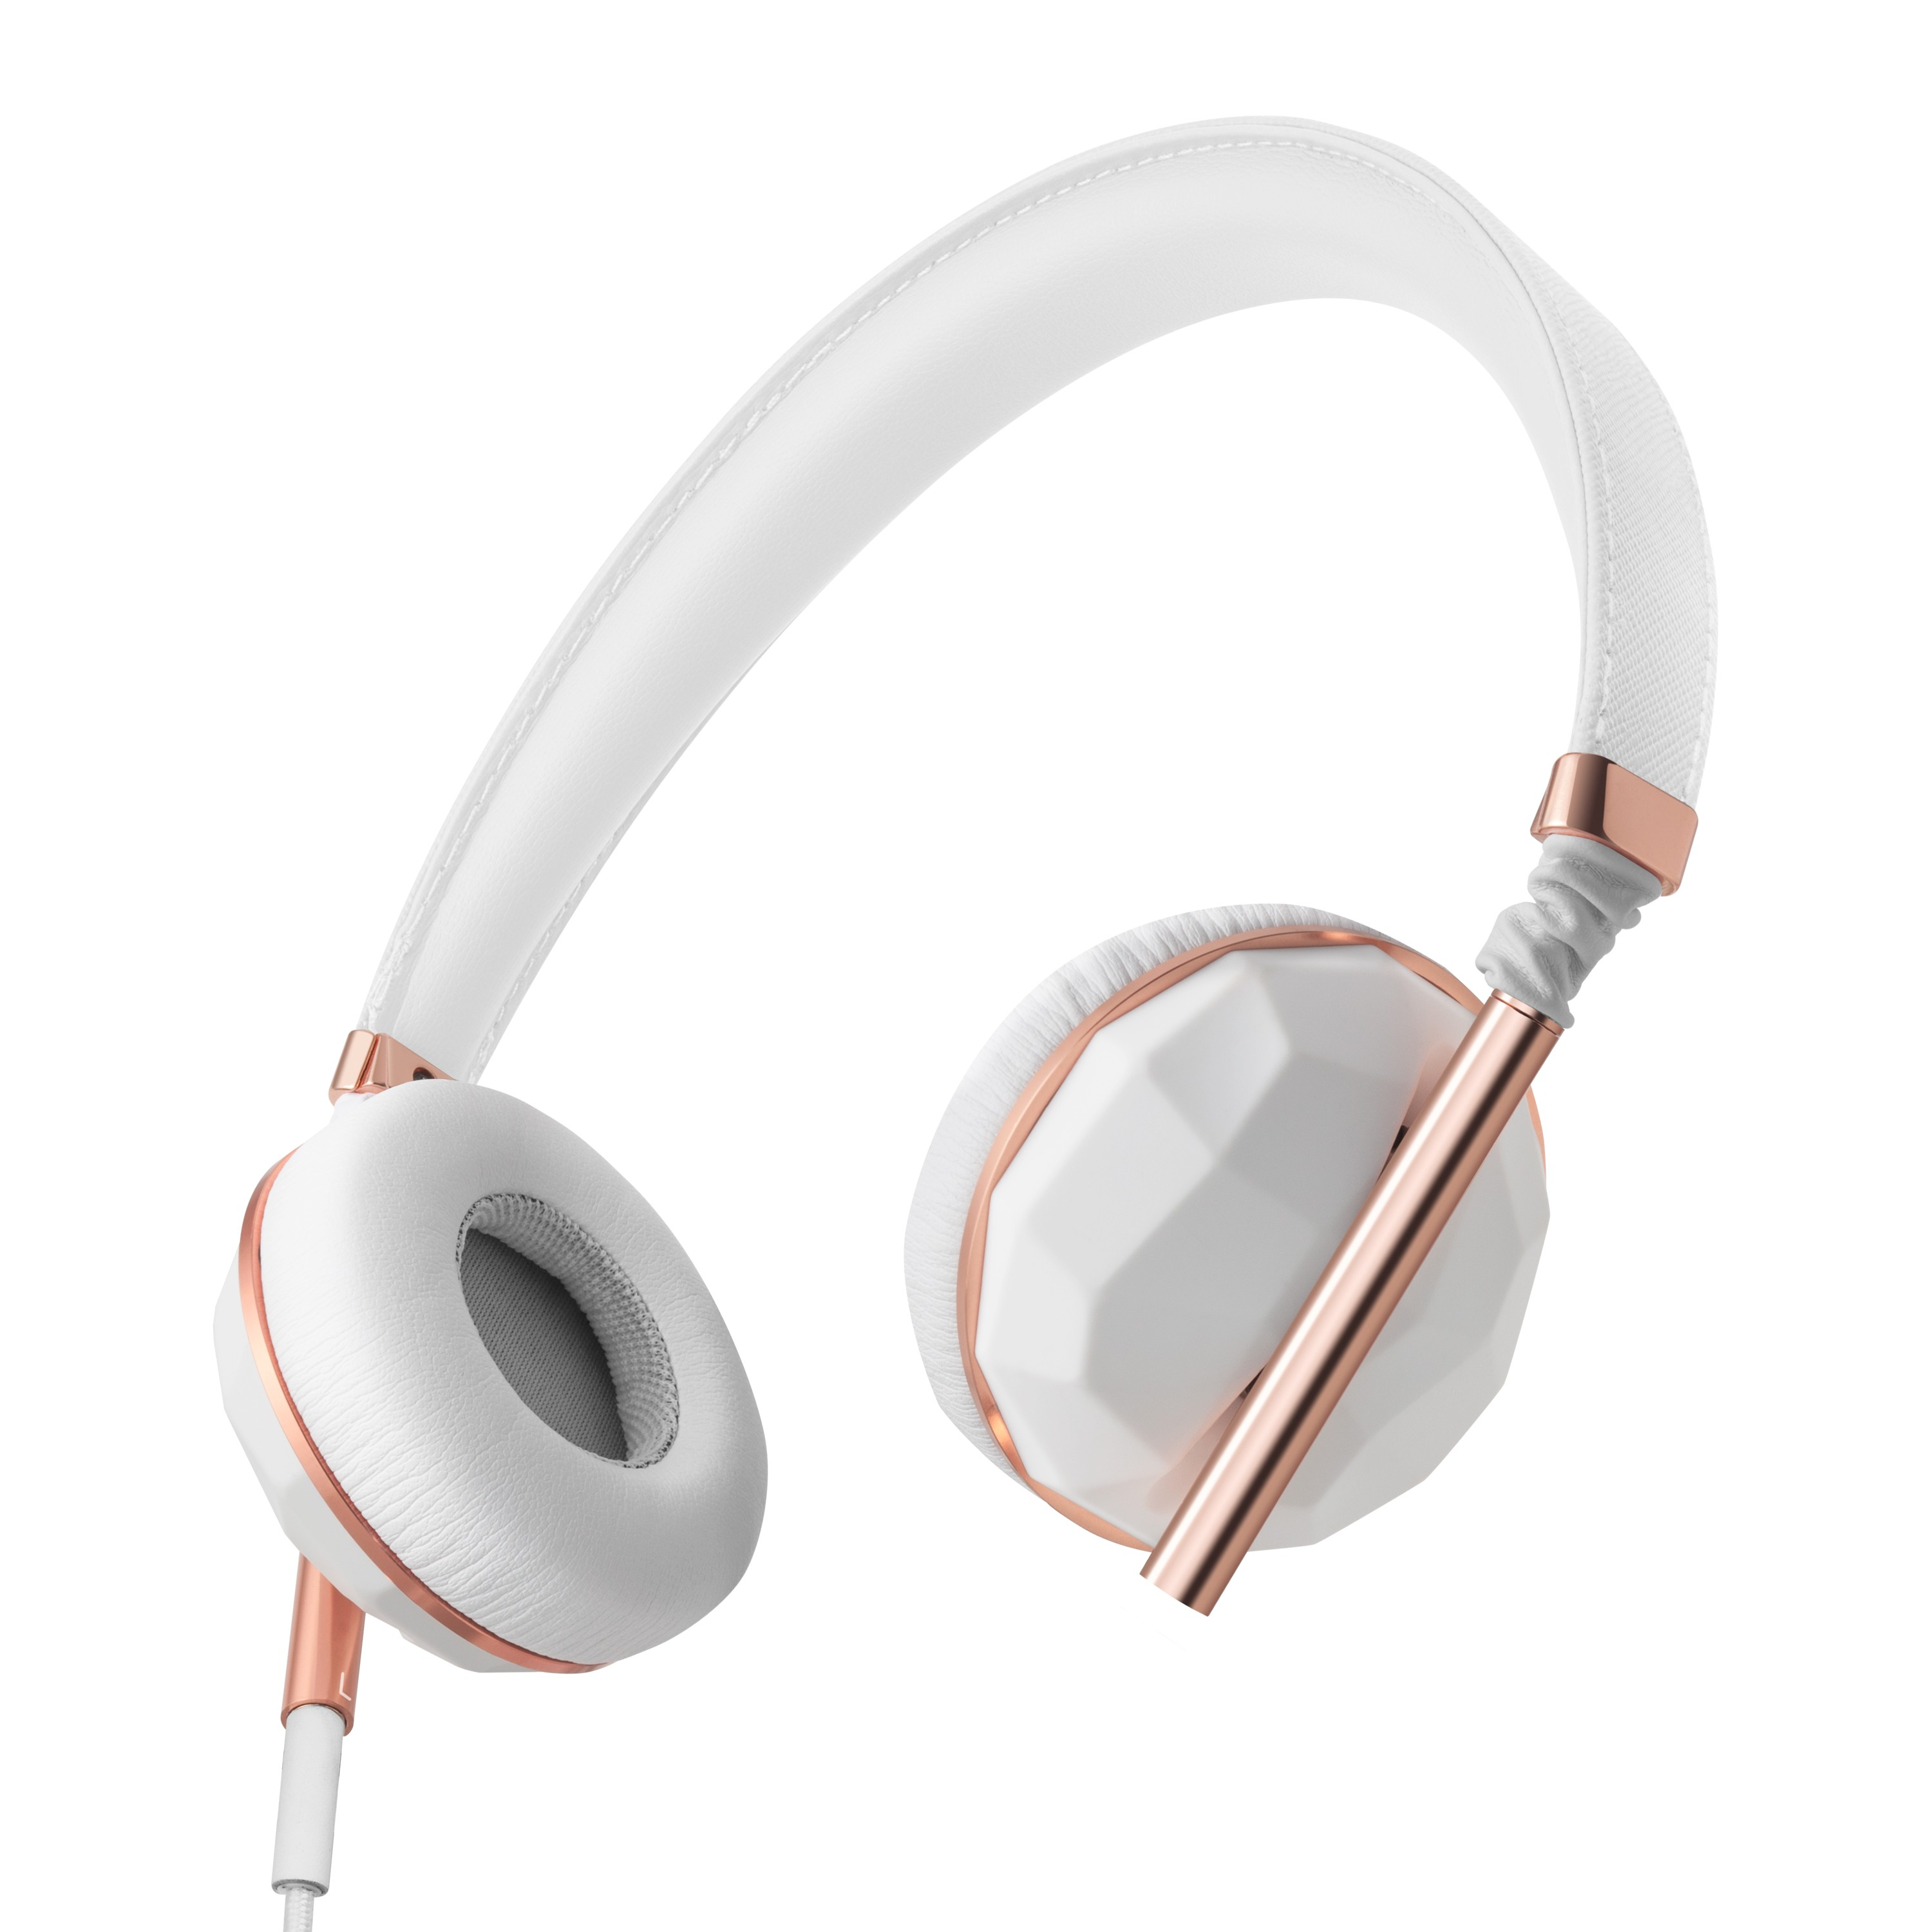 Earbuds white and black - rose gold earbuds